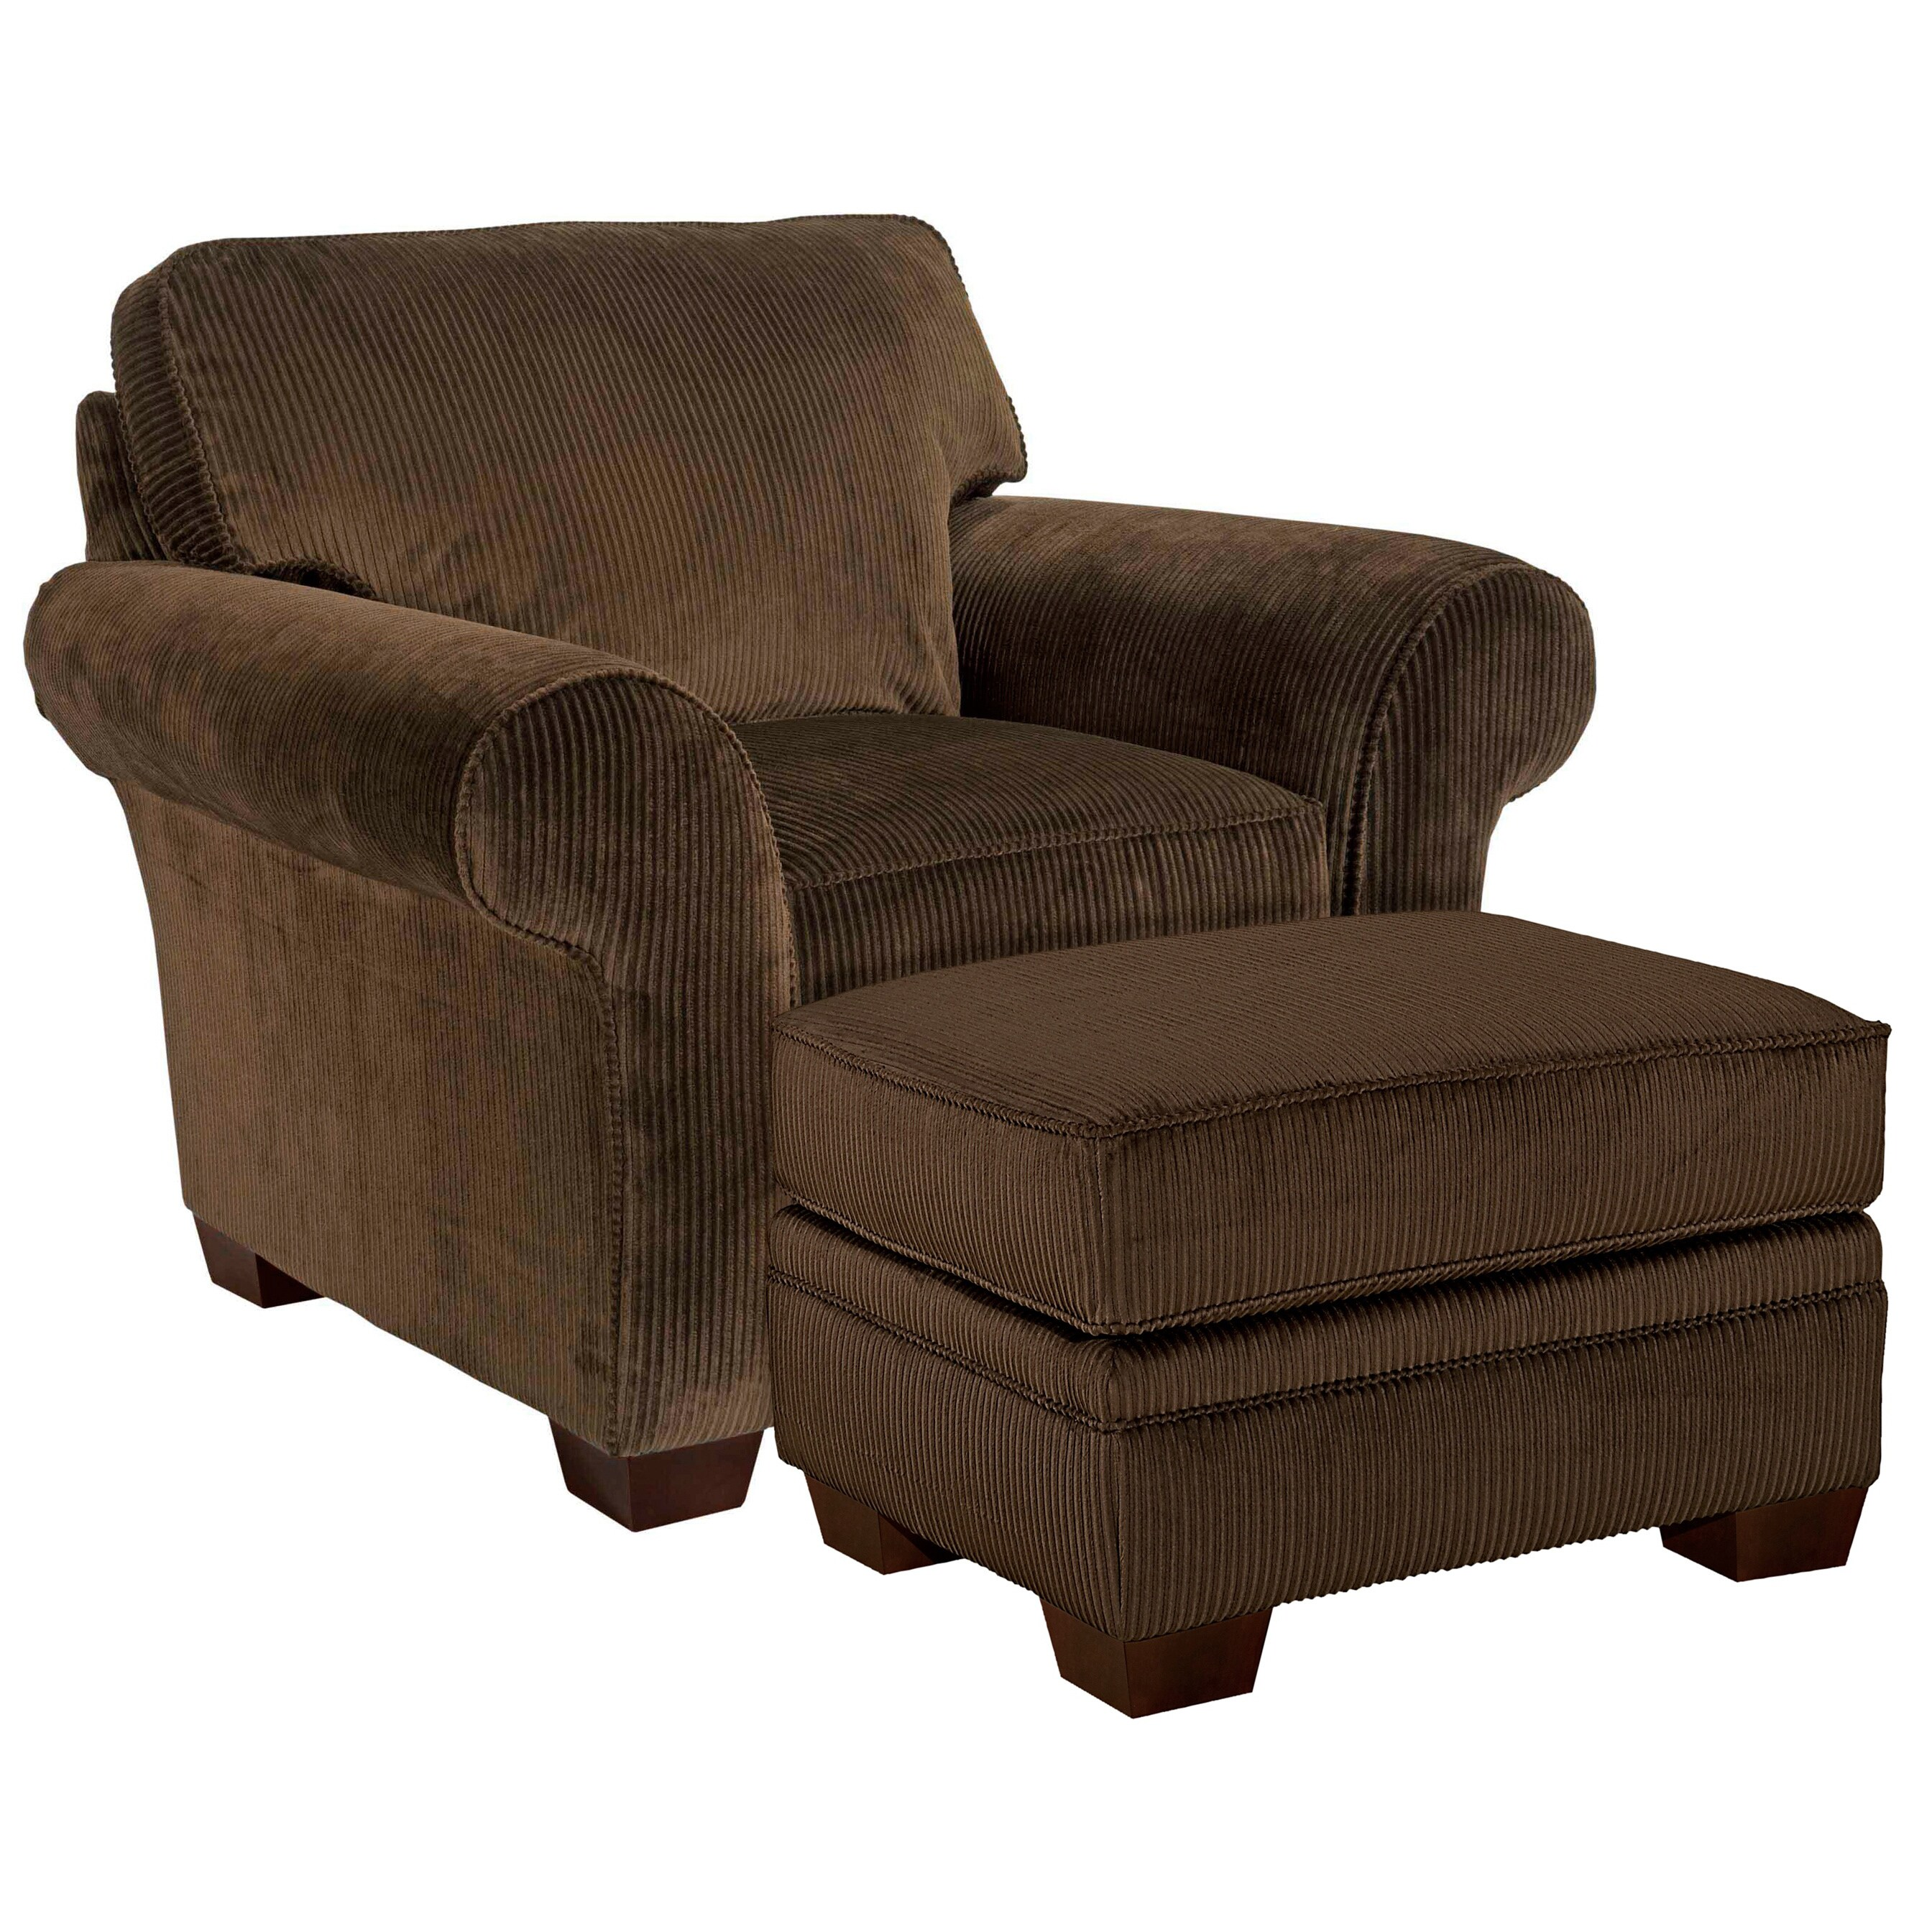 overstock com chairs unusual chair company broyhill zoey dark chocolate corduroy ottoman set